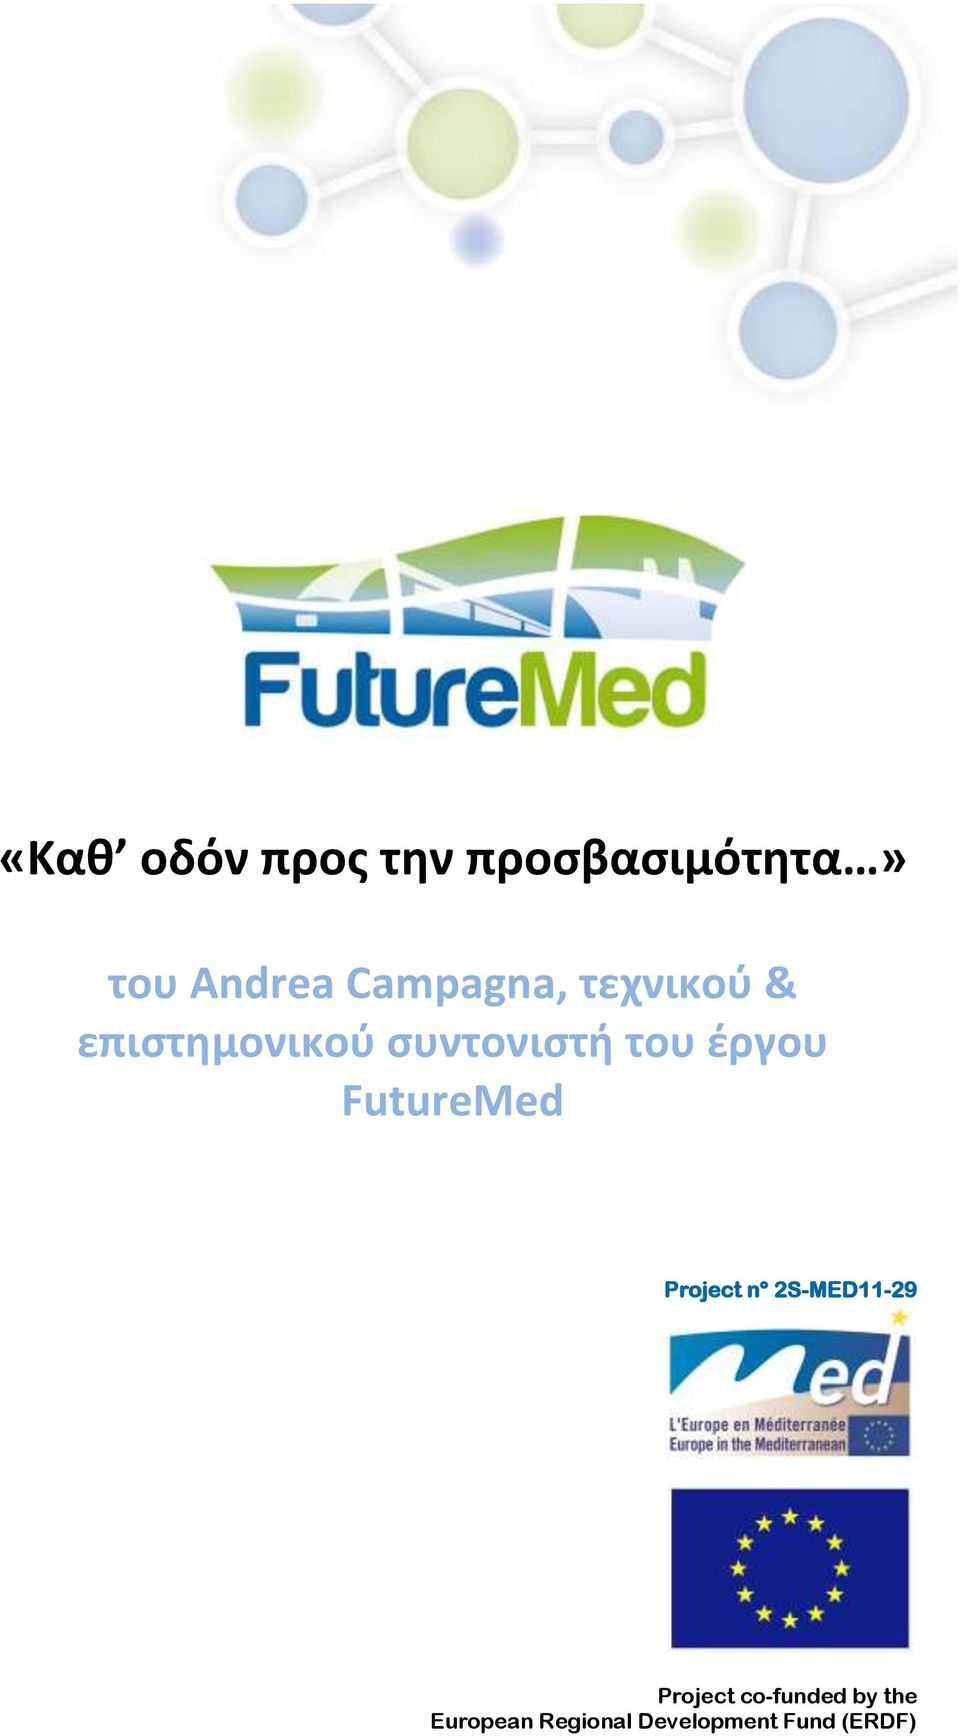 έργου FutureMed Project n 2S-MED11-29 Project